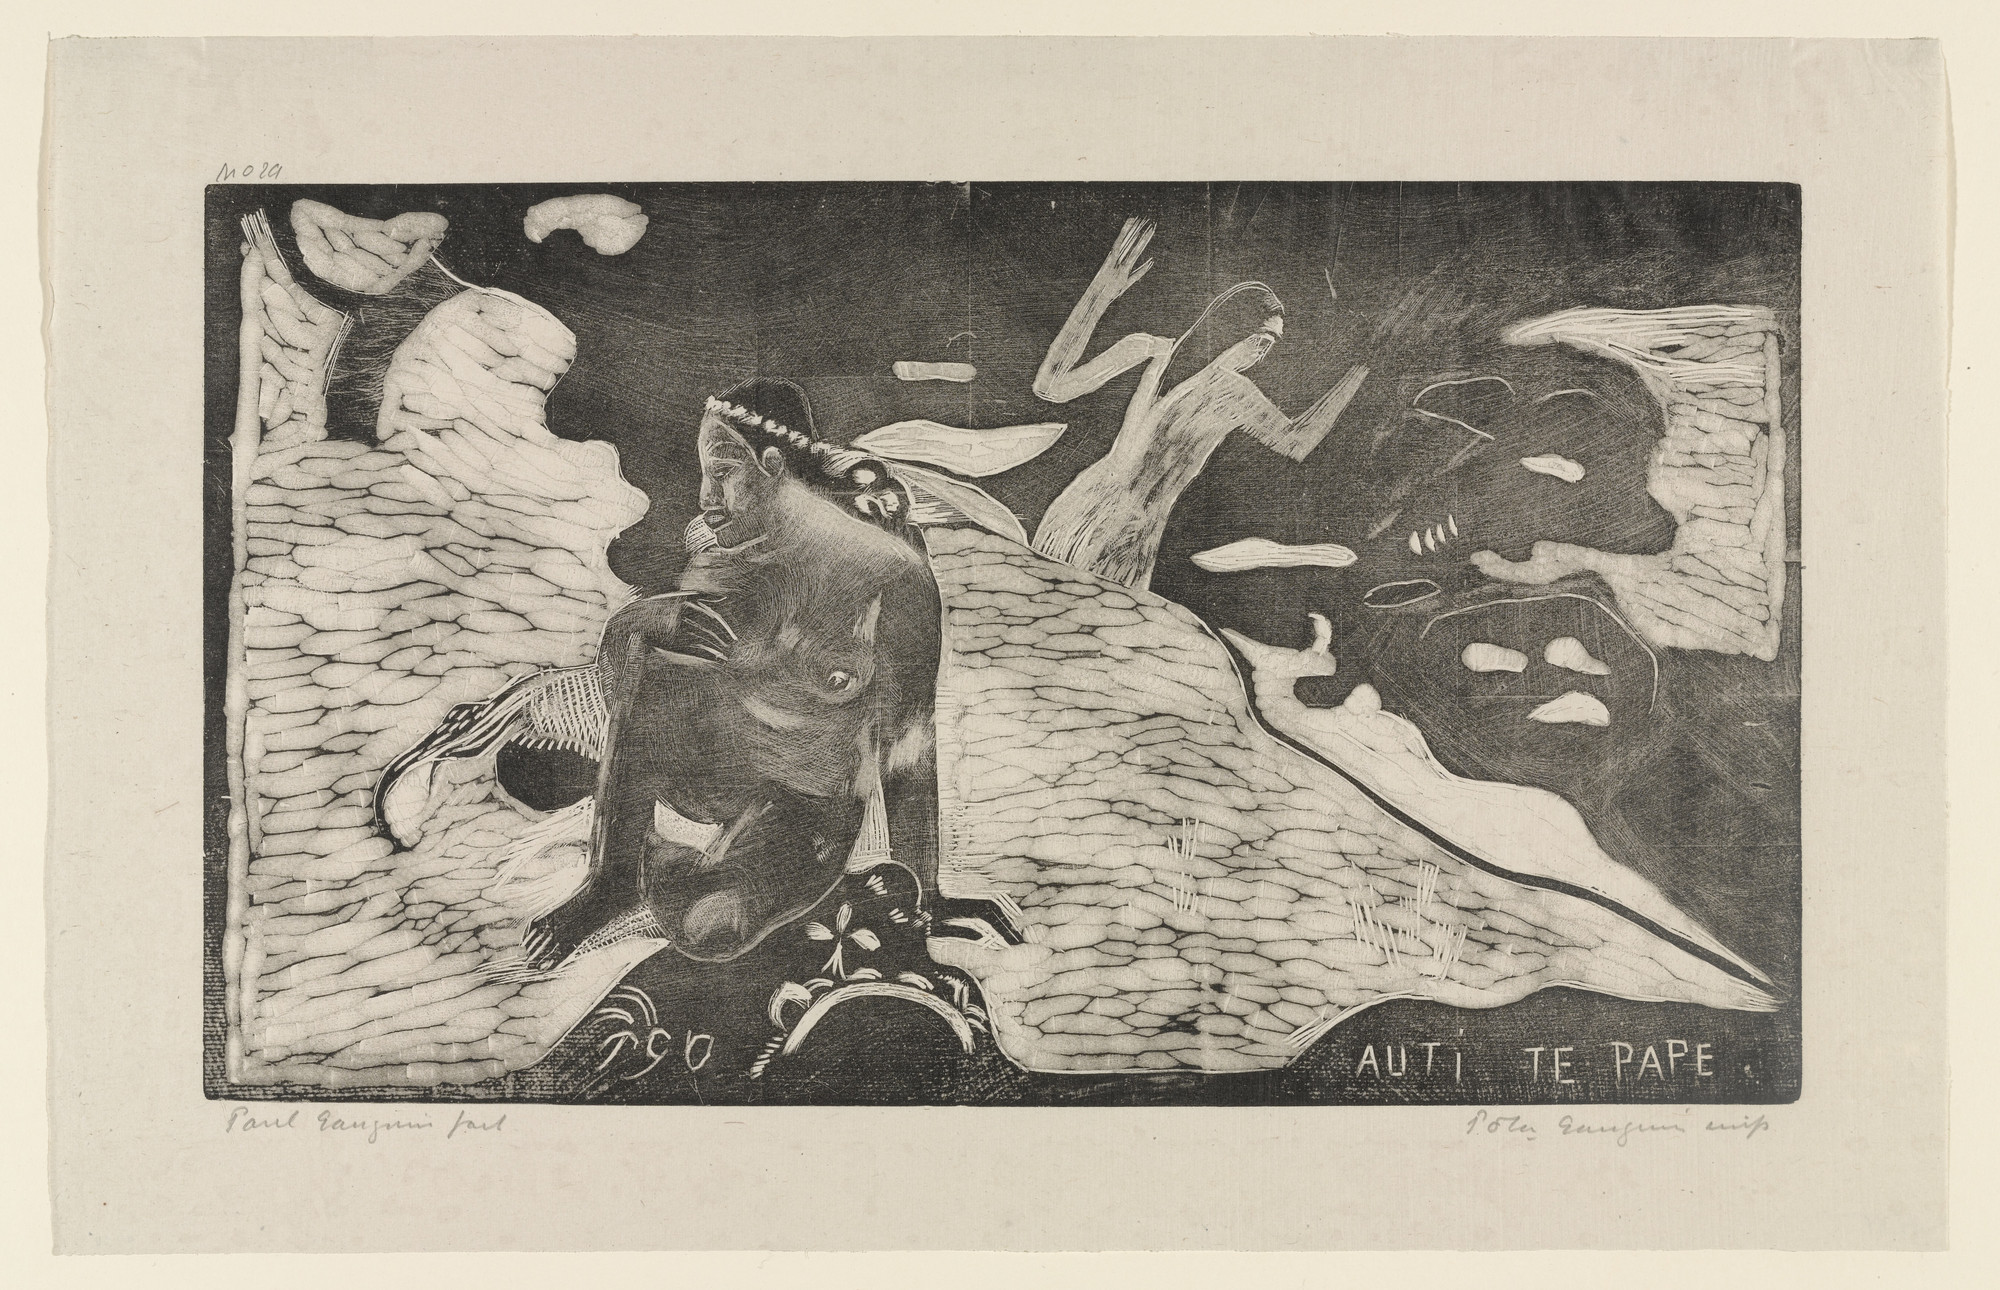 Paul Gauguin. Auti te Pape (Women at the River) from Noa Noa (Fragrant Scent). 1894, printed 1921